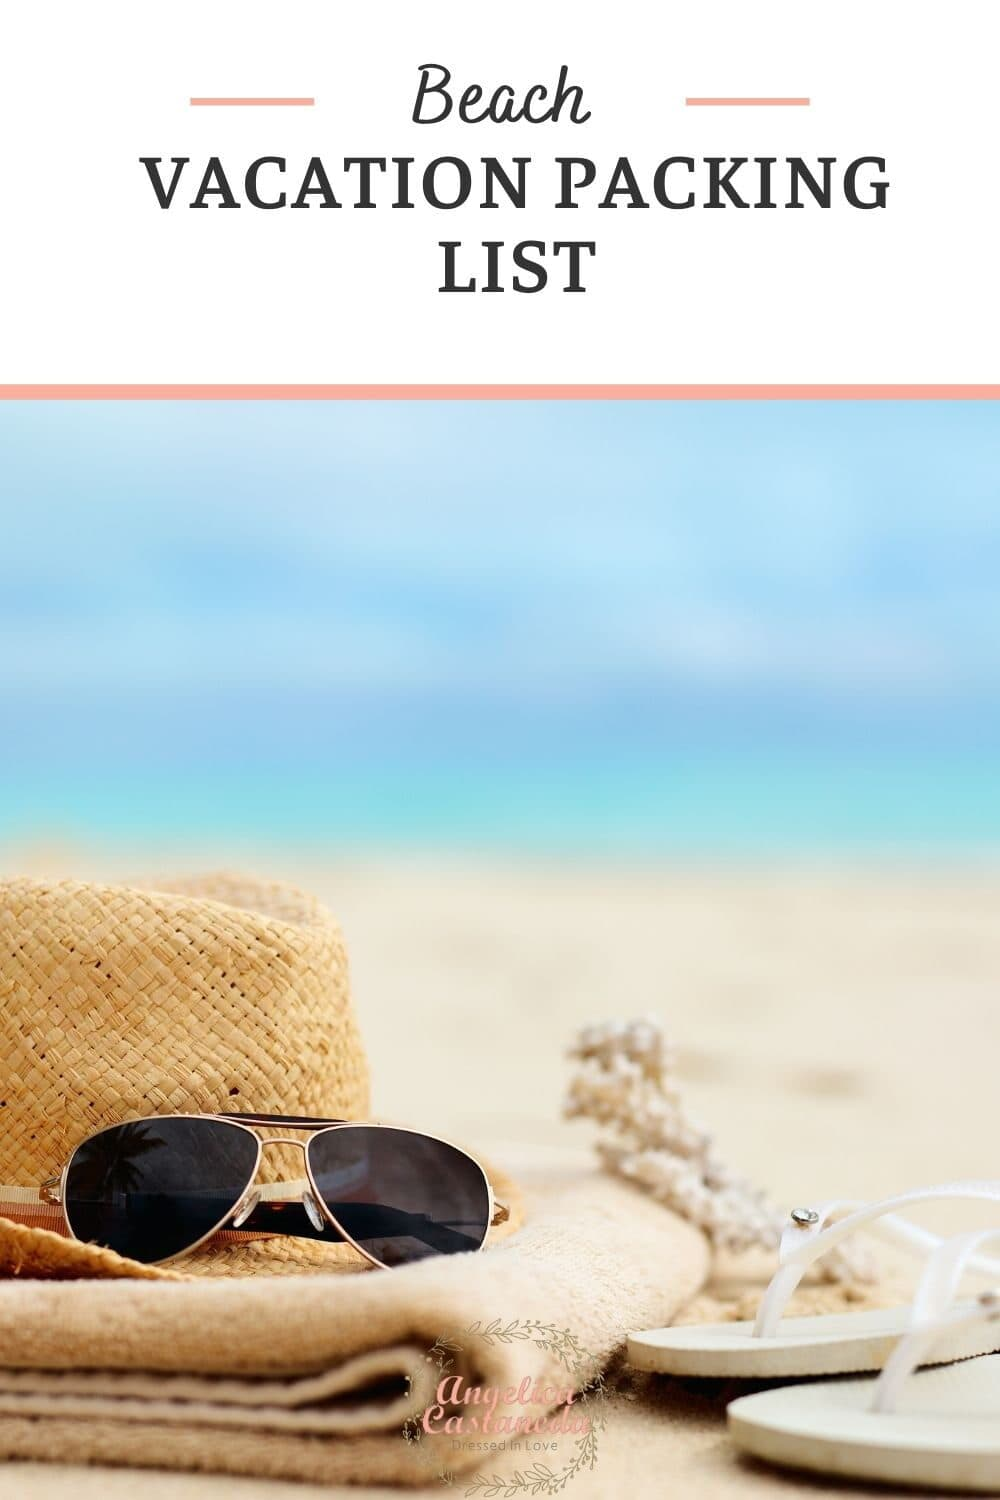 Brown sun hat glasses and white sandals sitting over a beige towel by the beach perfect for a beach vacation packing list. on the sand